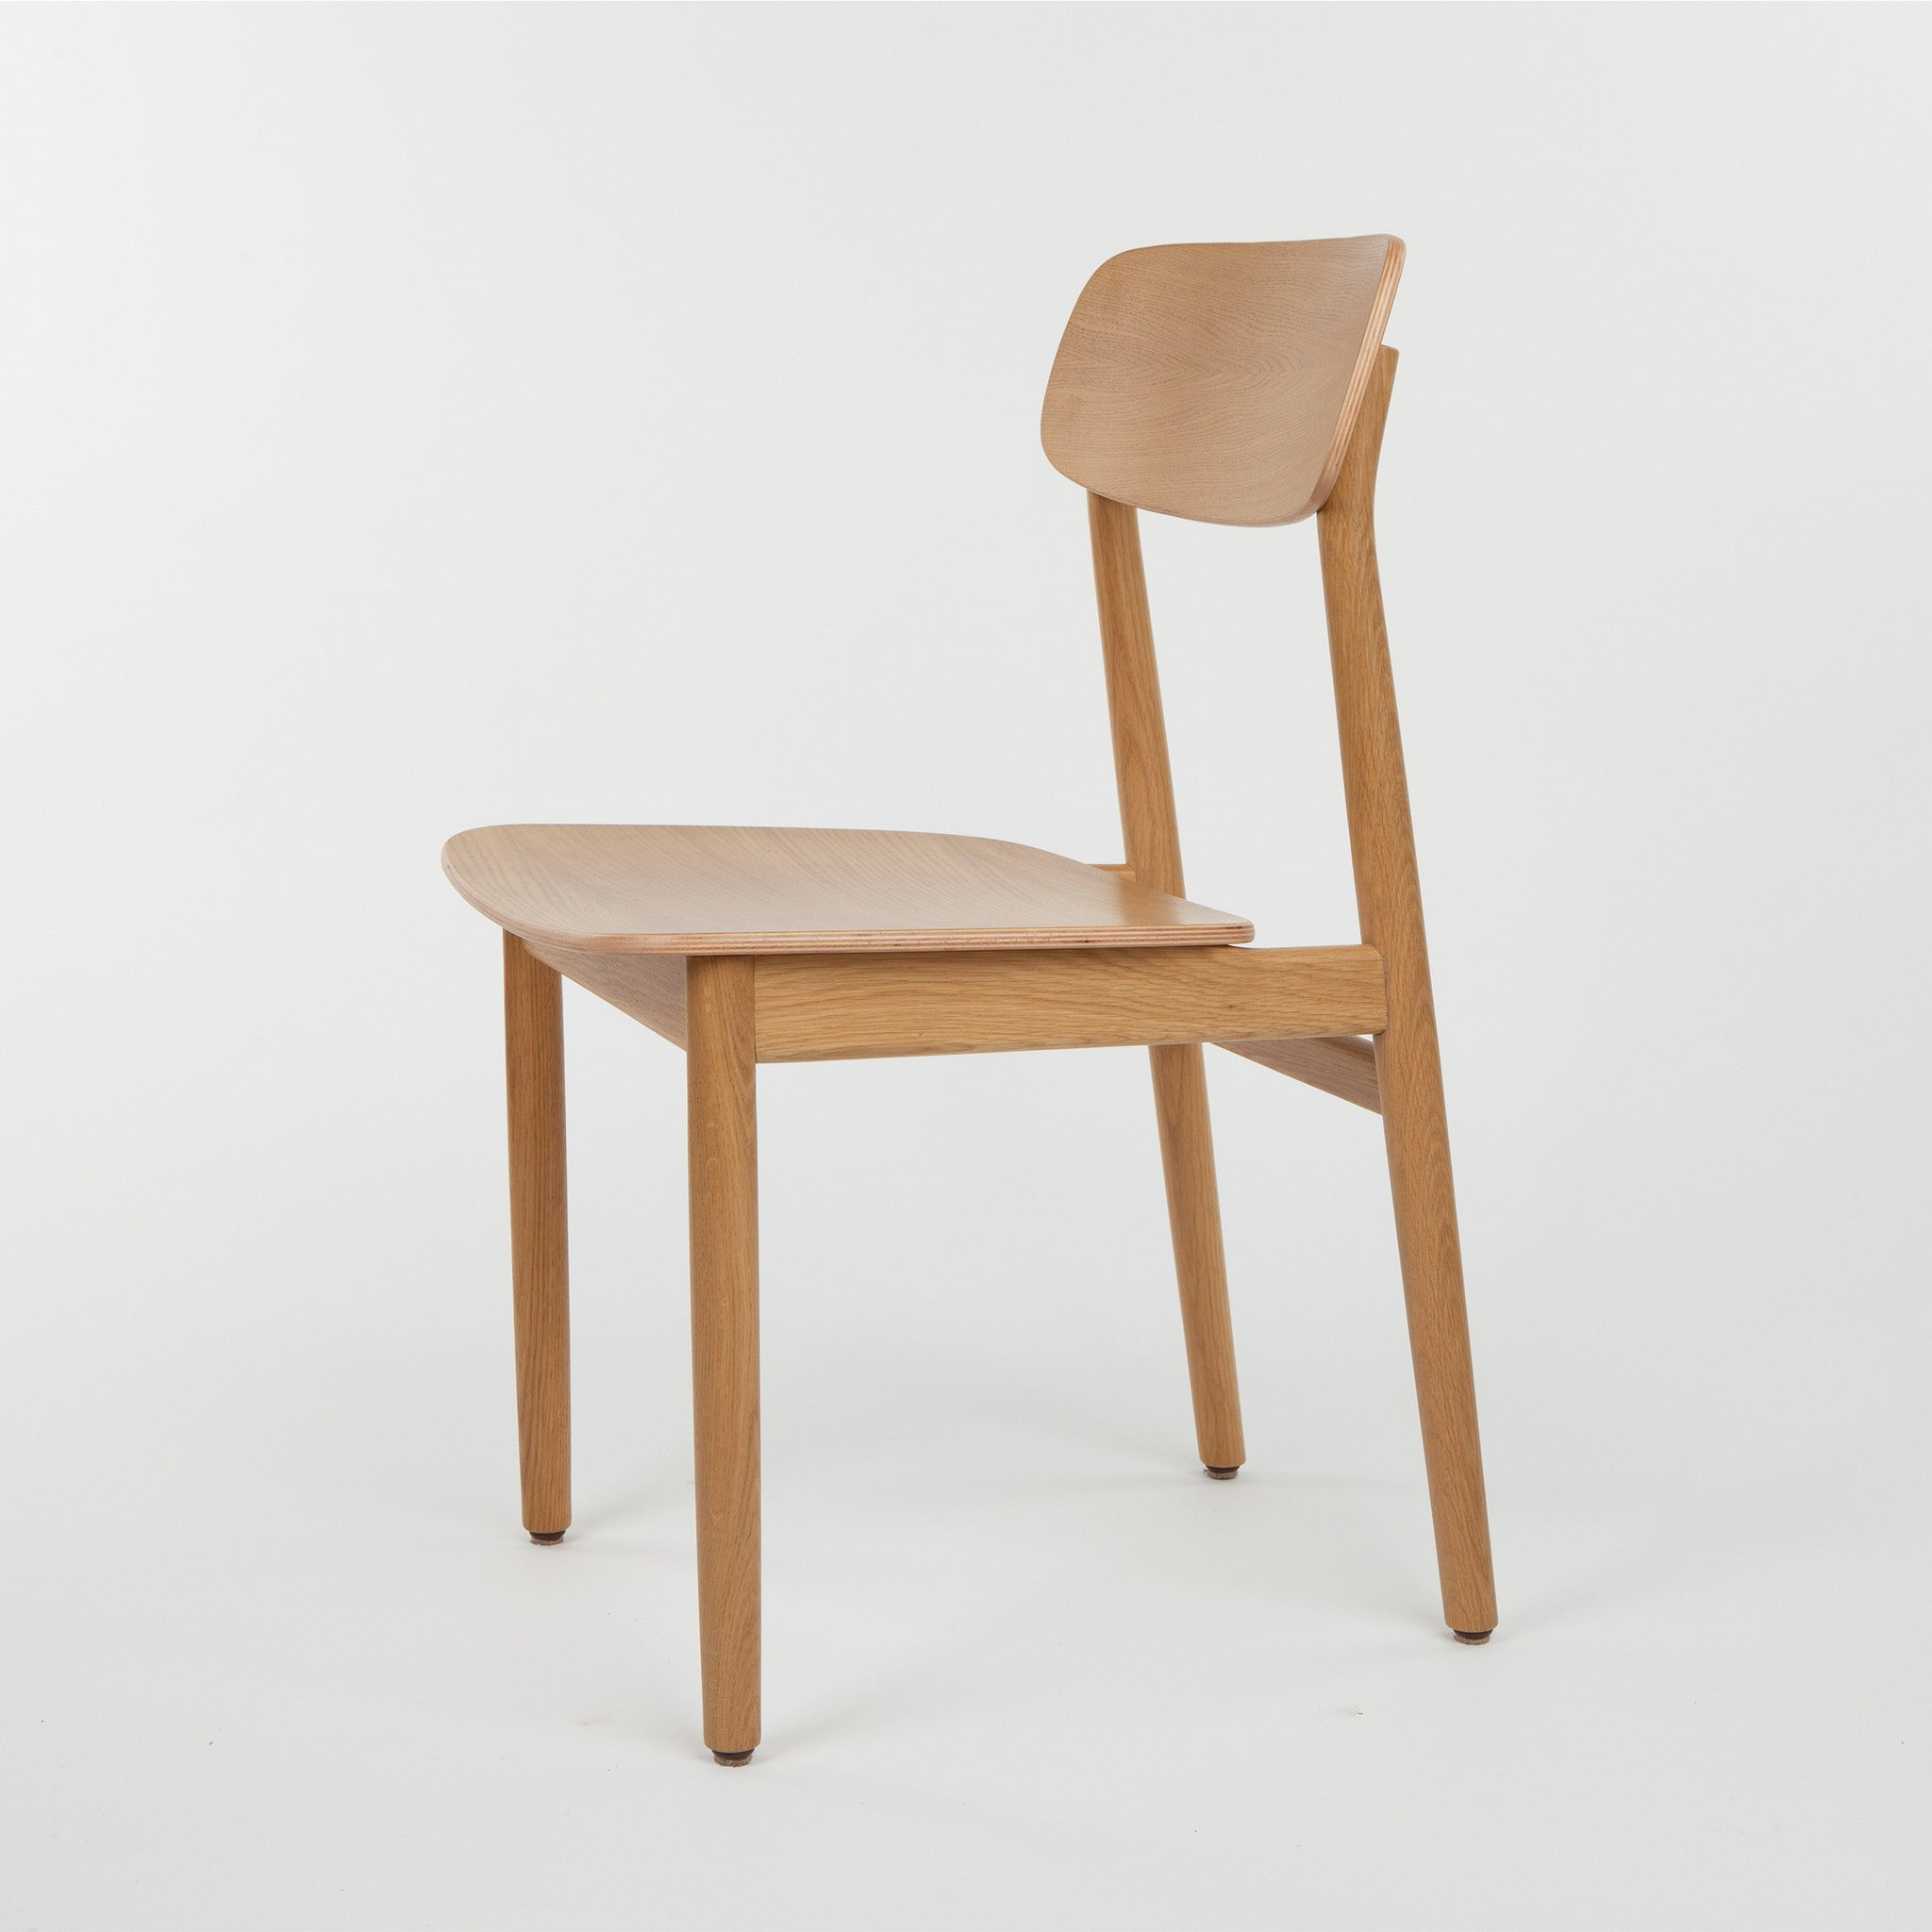 Wooden chairs with armrest - Quick View Thonet Chair 130